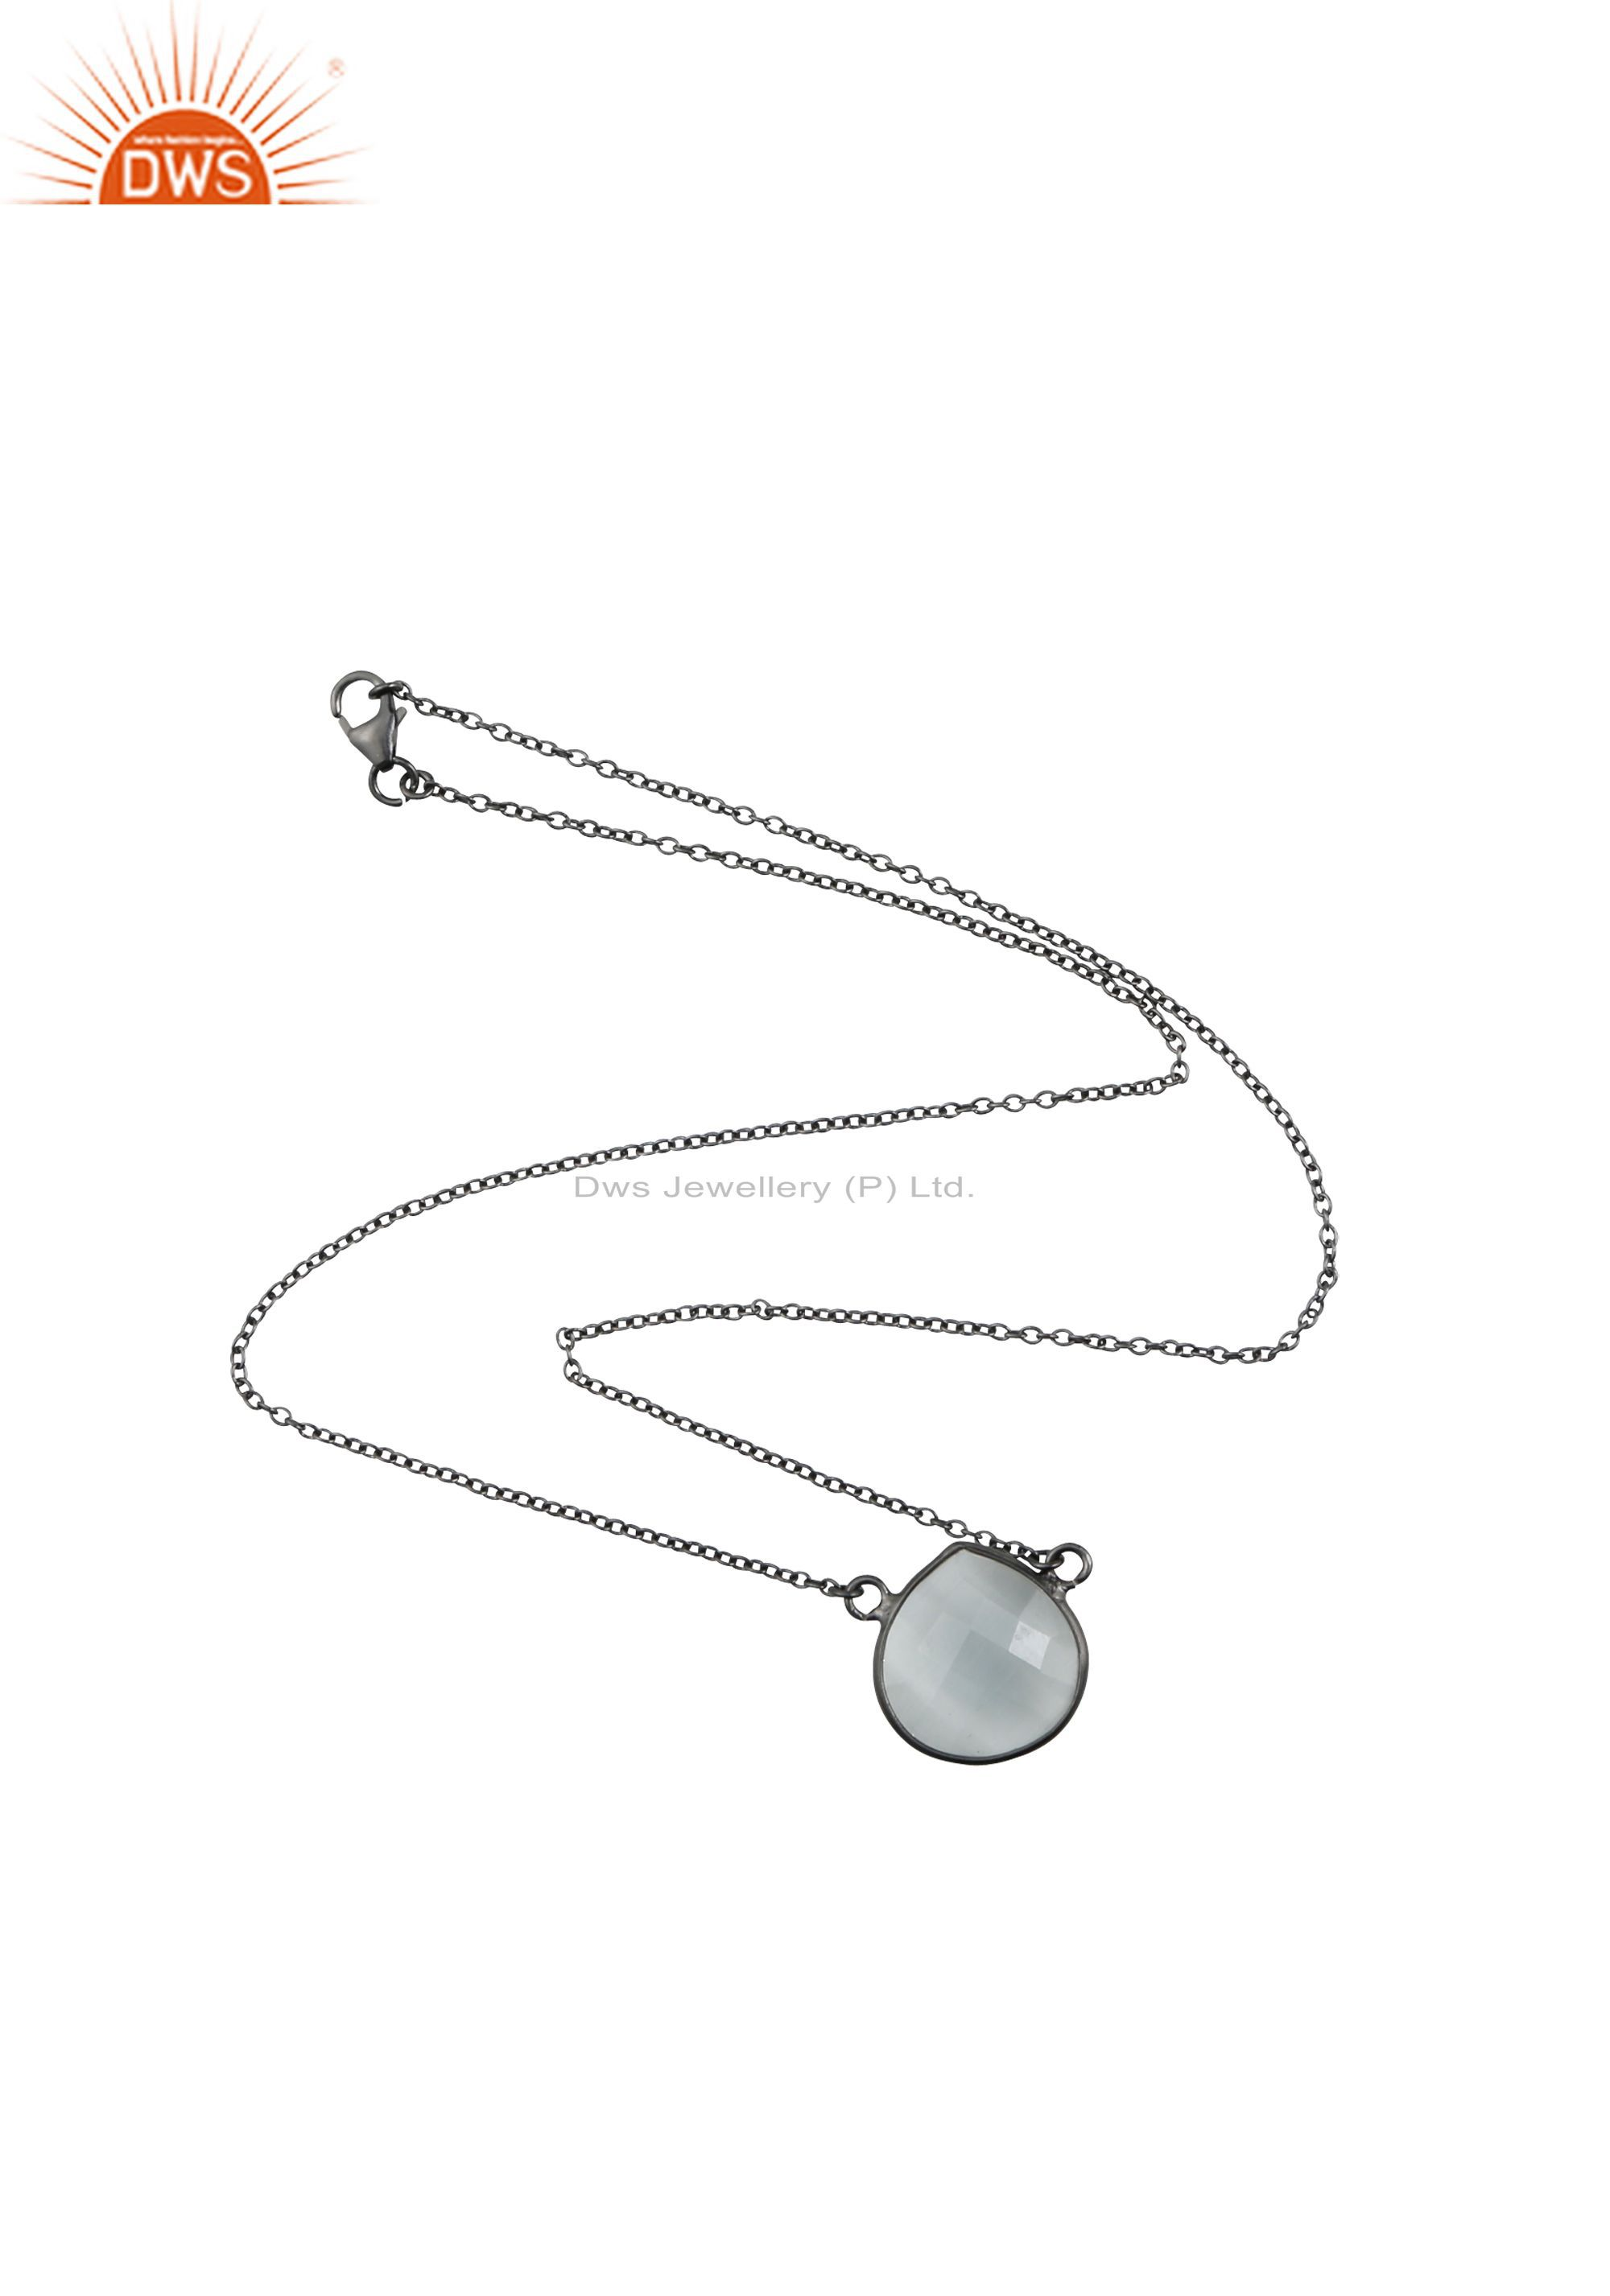 925 Sterling Silver Oxidized Faceted White Moonstone Pendant Chain Necklace